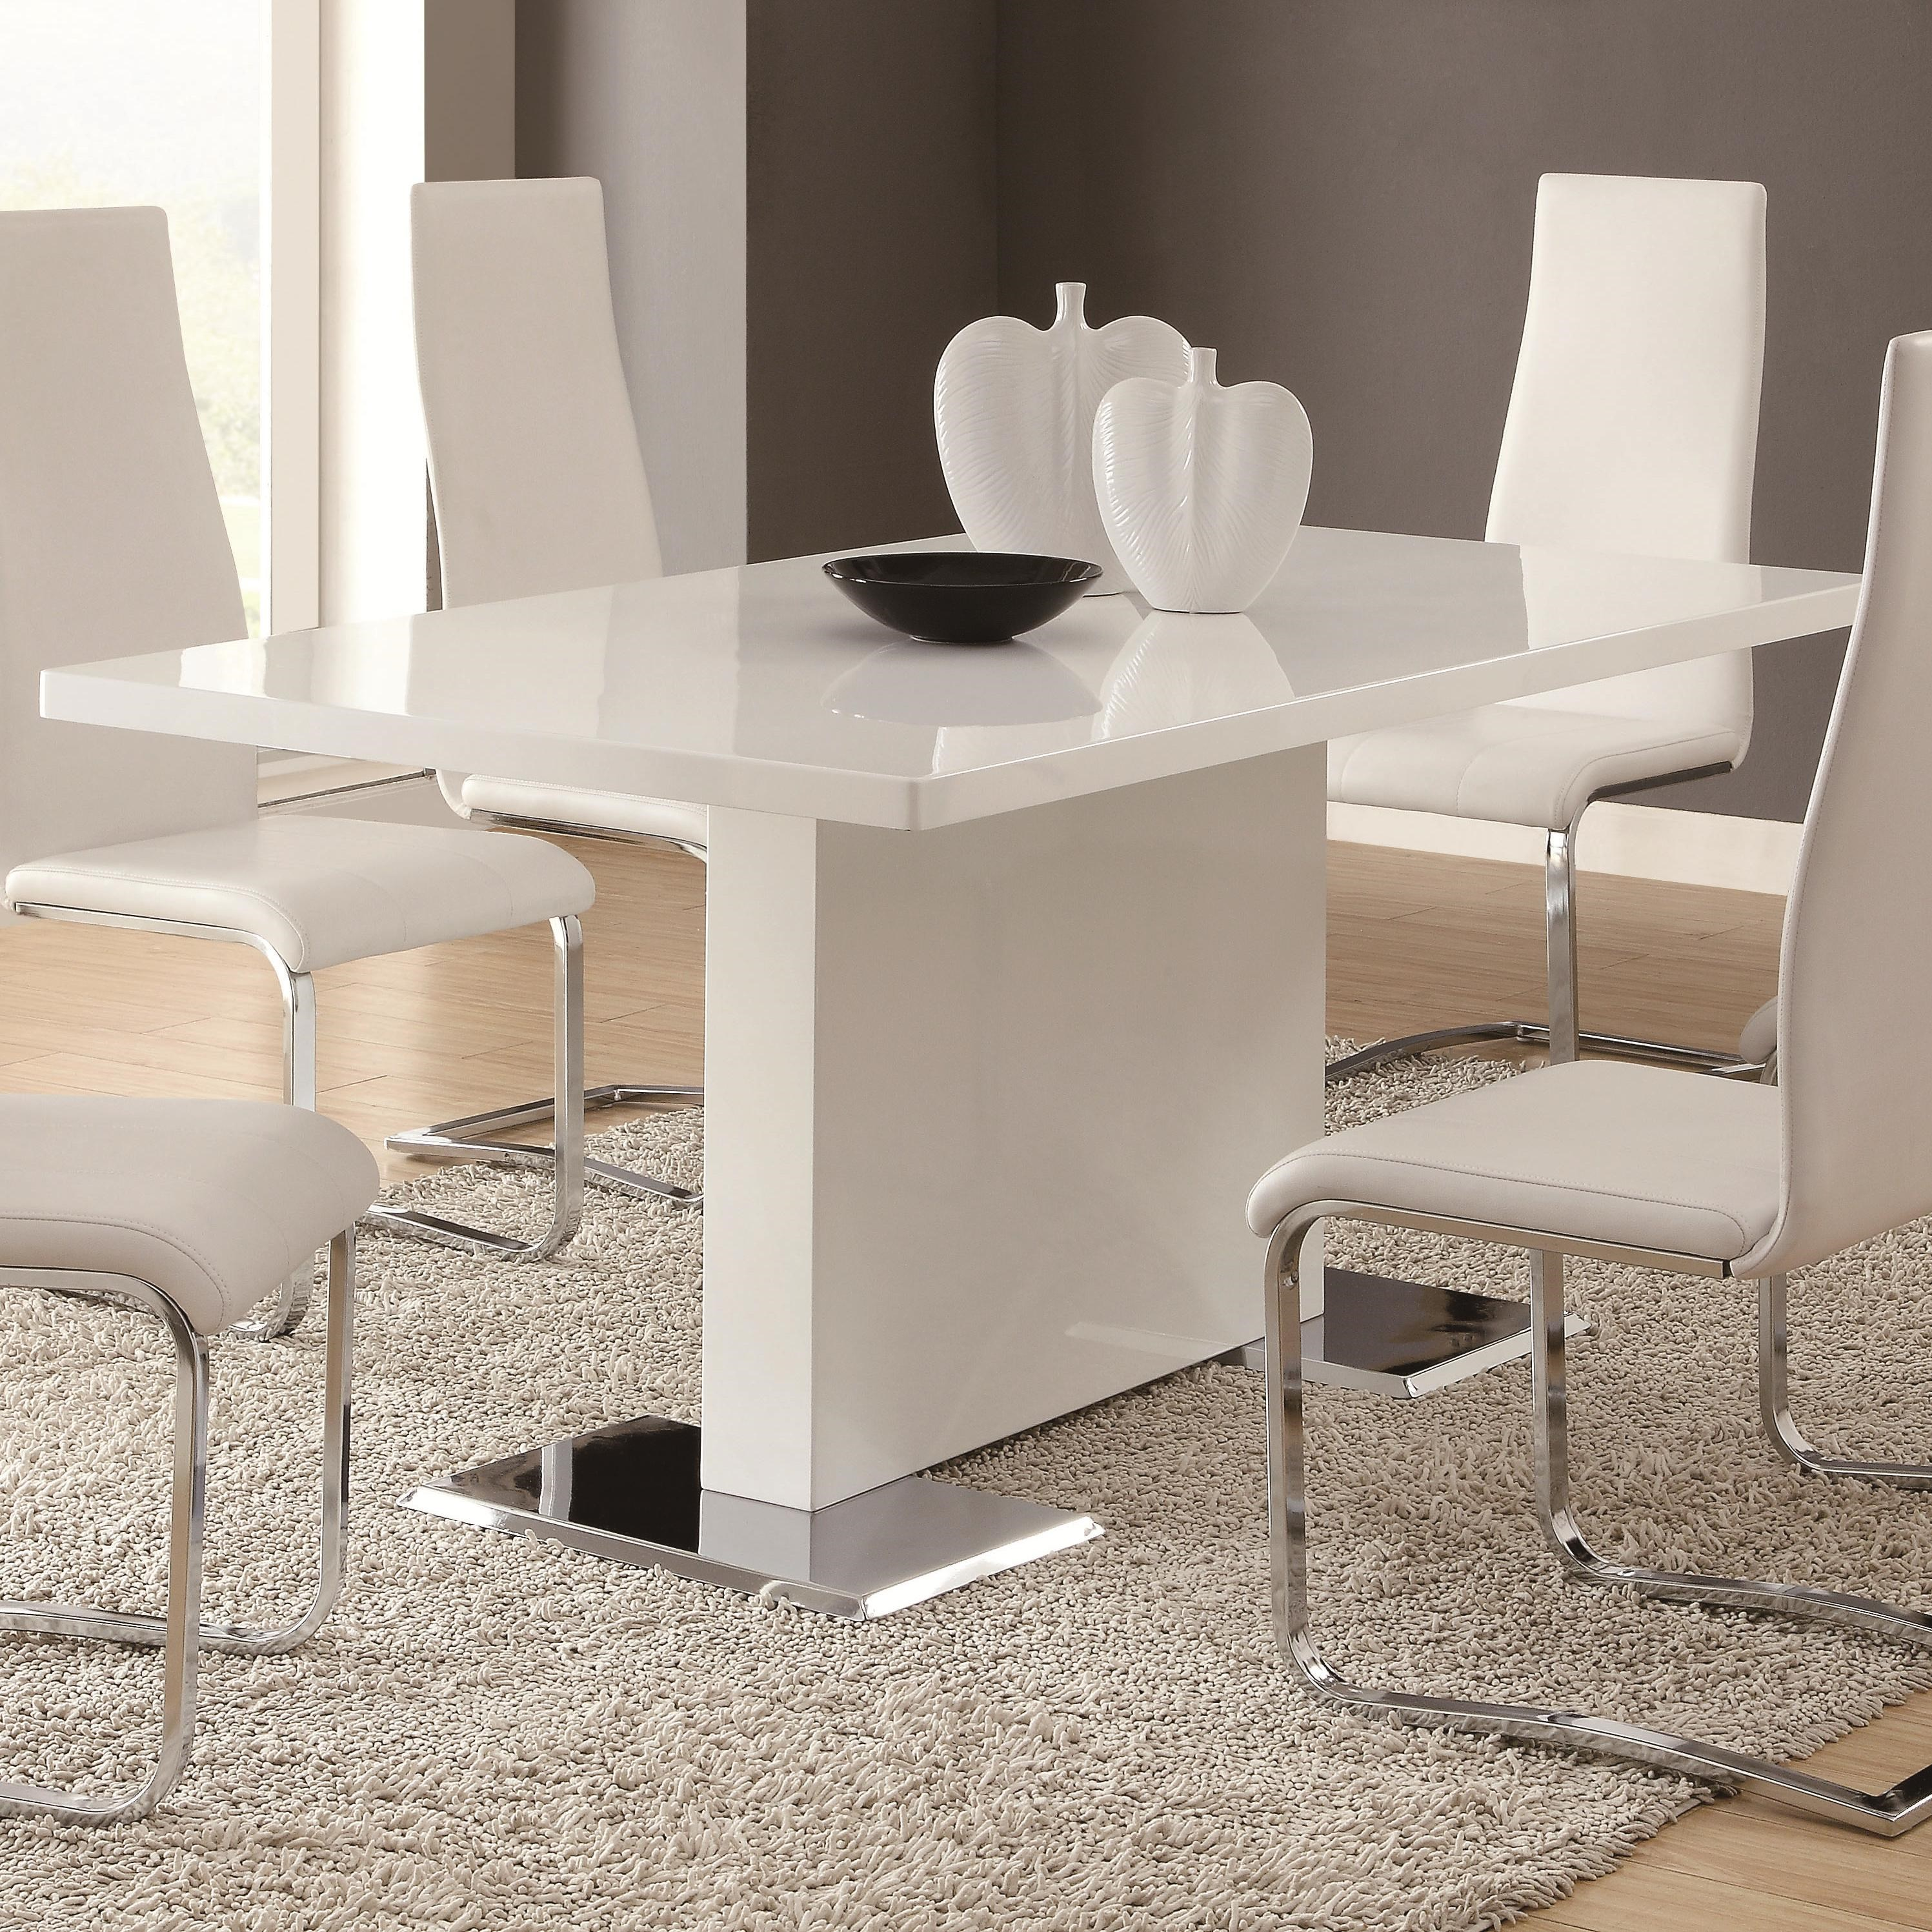 Coaster Modern Dining White Dining Table With Chrome Metal Base   Coaster  Fine Furniture